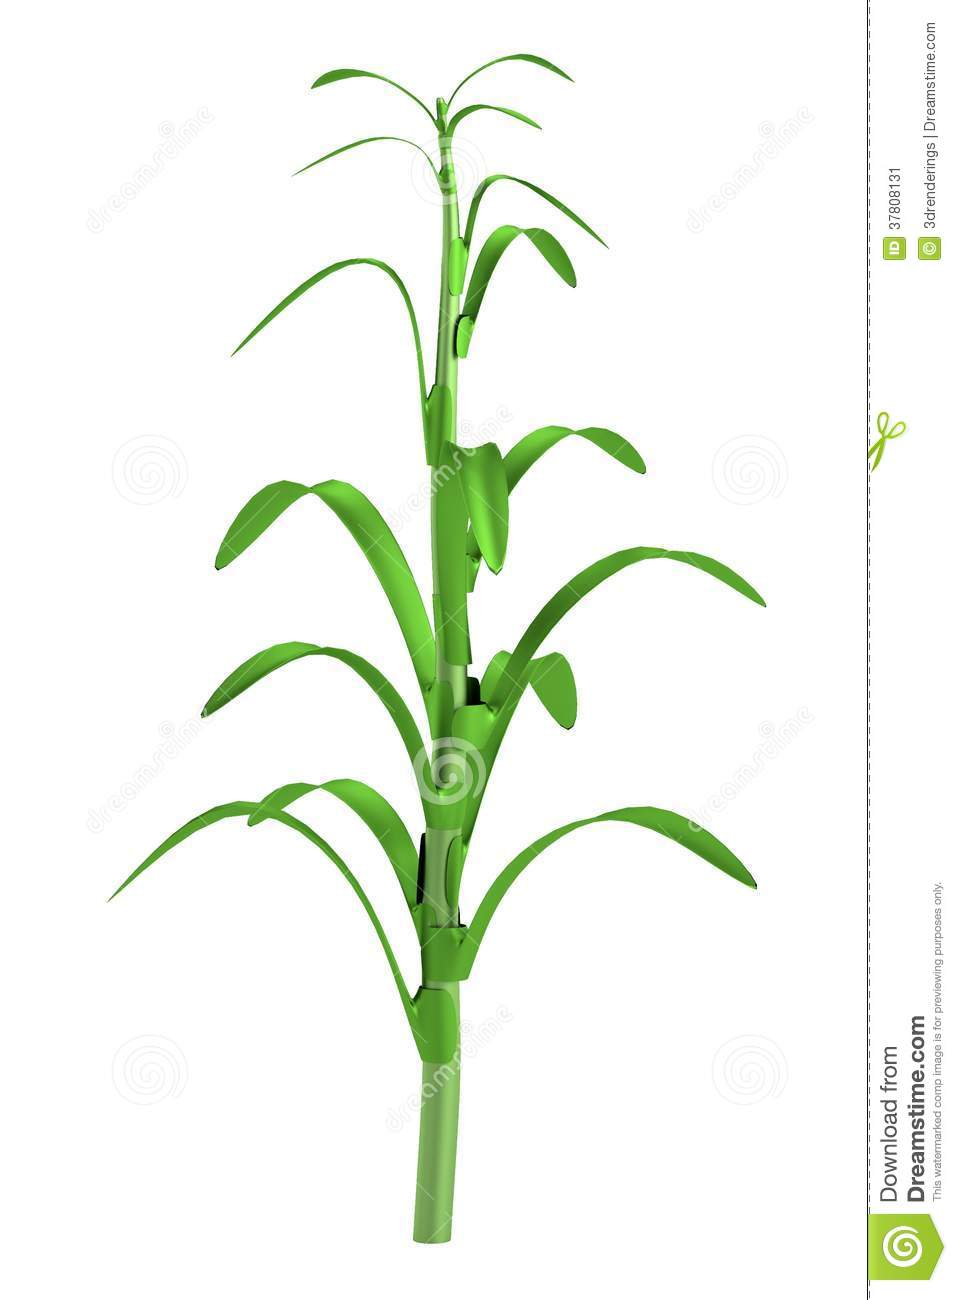 Corn Stalk With Corn 3d model of corn stalk